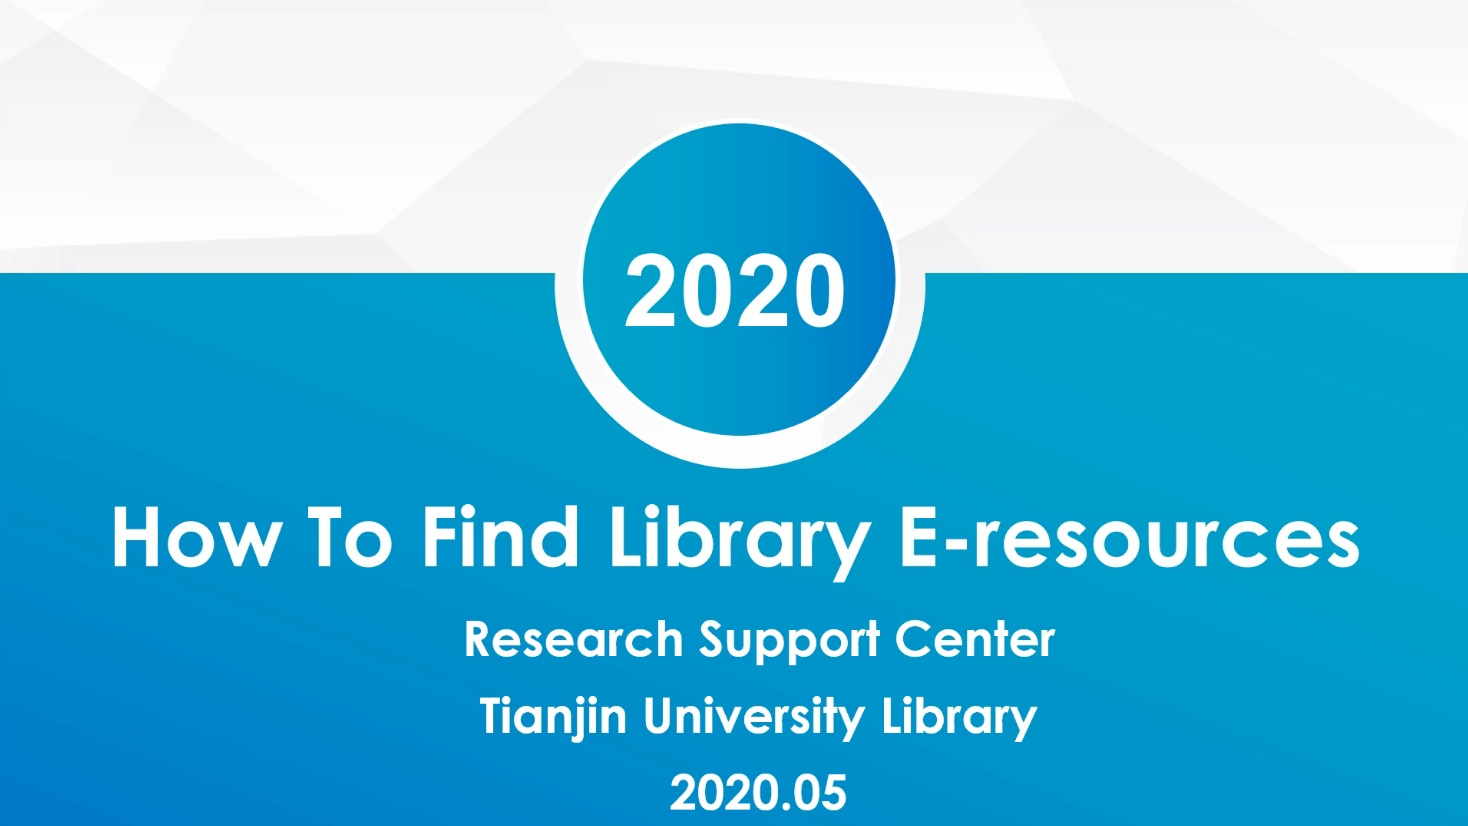 第九讲:How to Find Library's E-resources